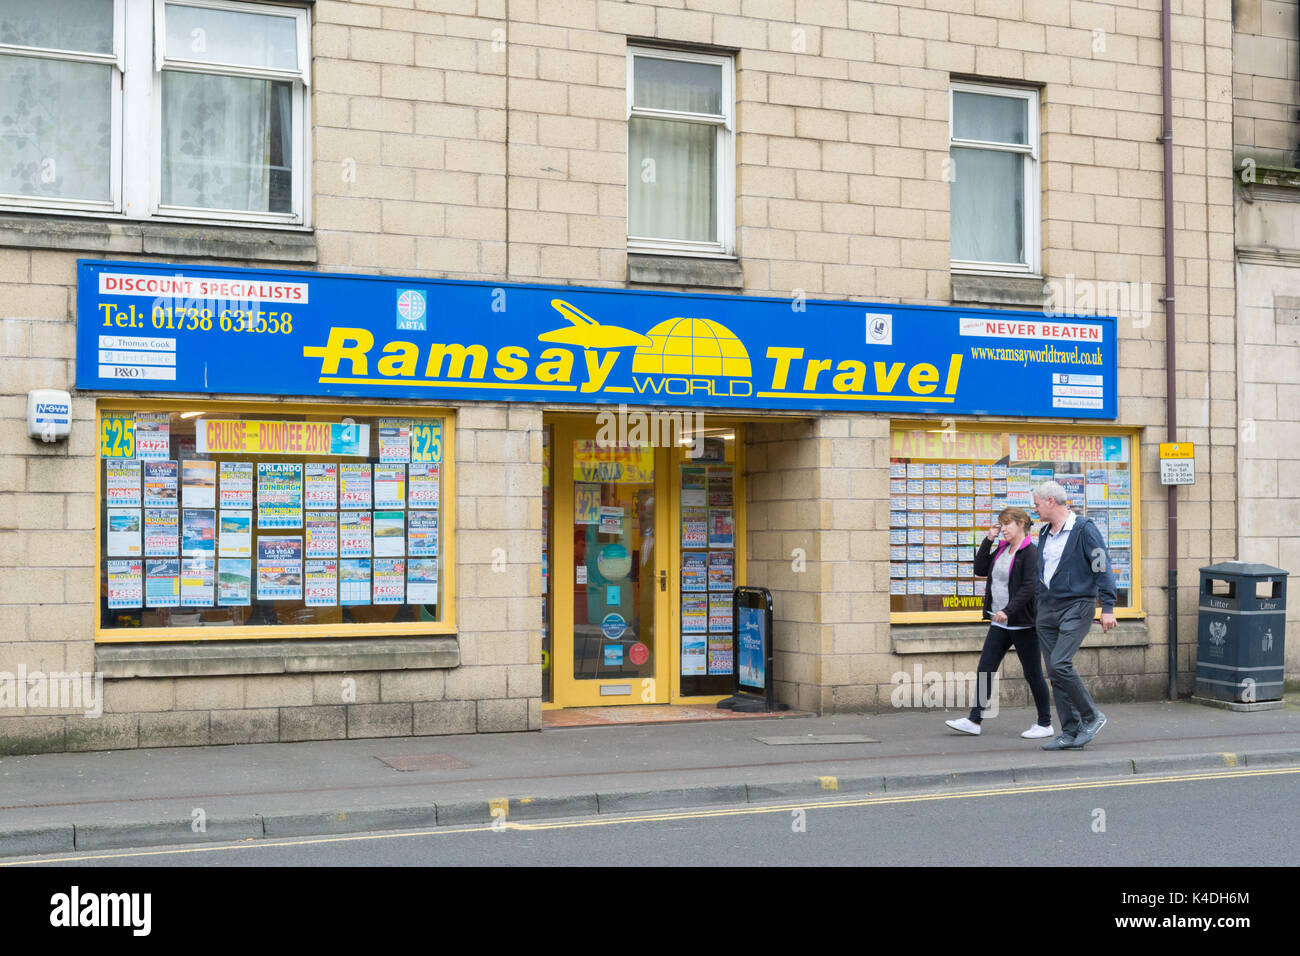 Independent high street travel agent agency, Perth, Scotland, UK - Stock Image